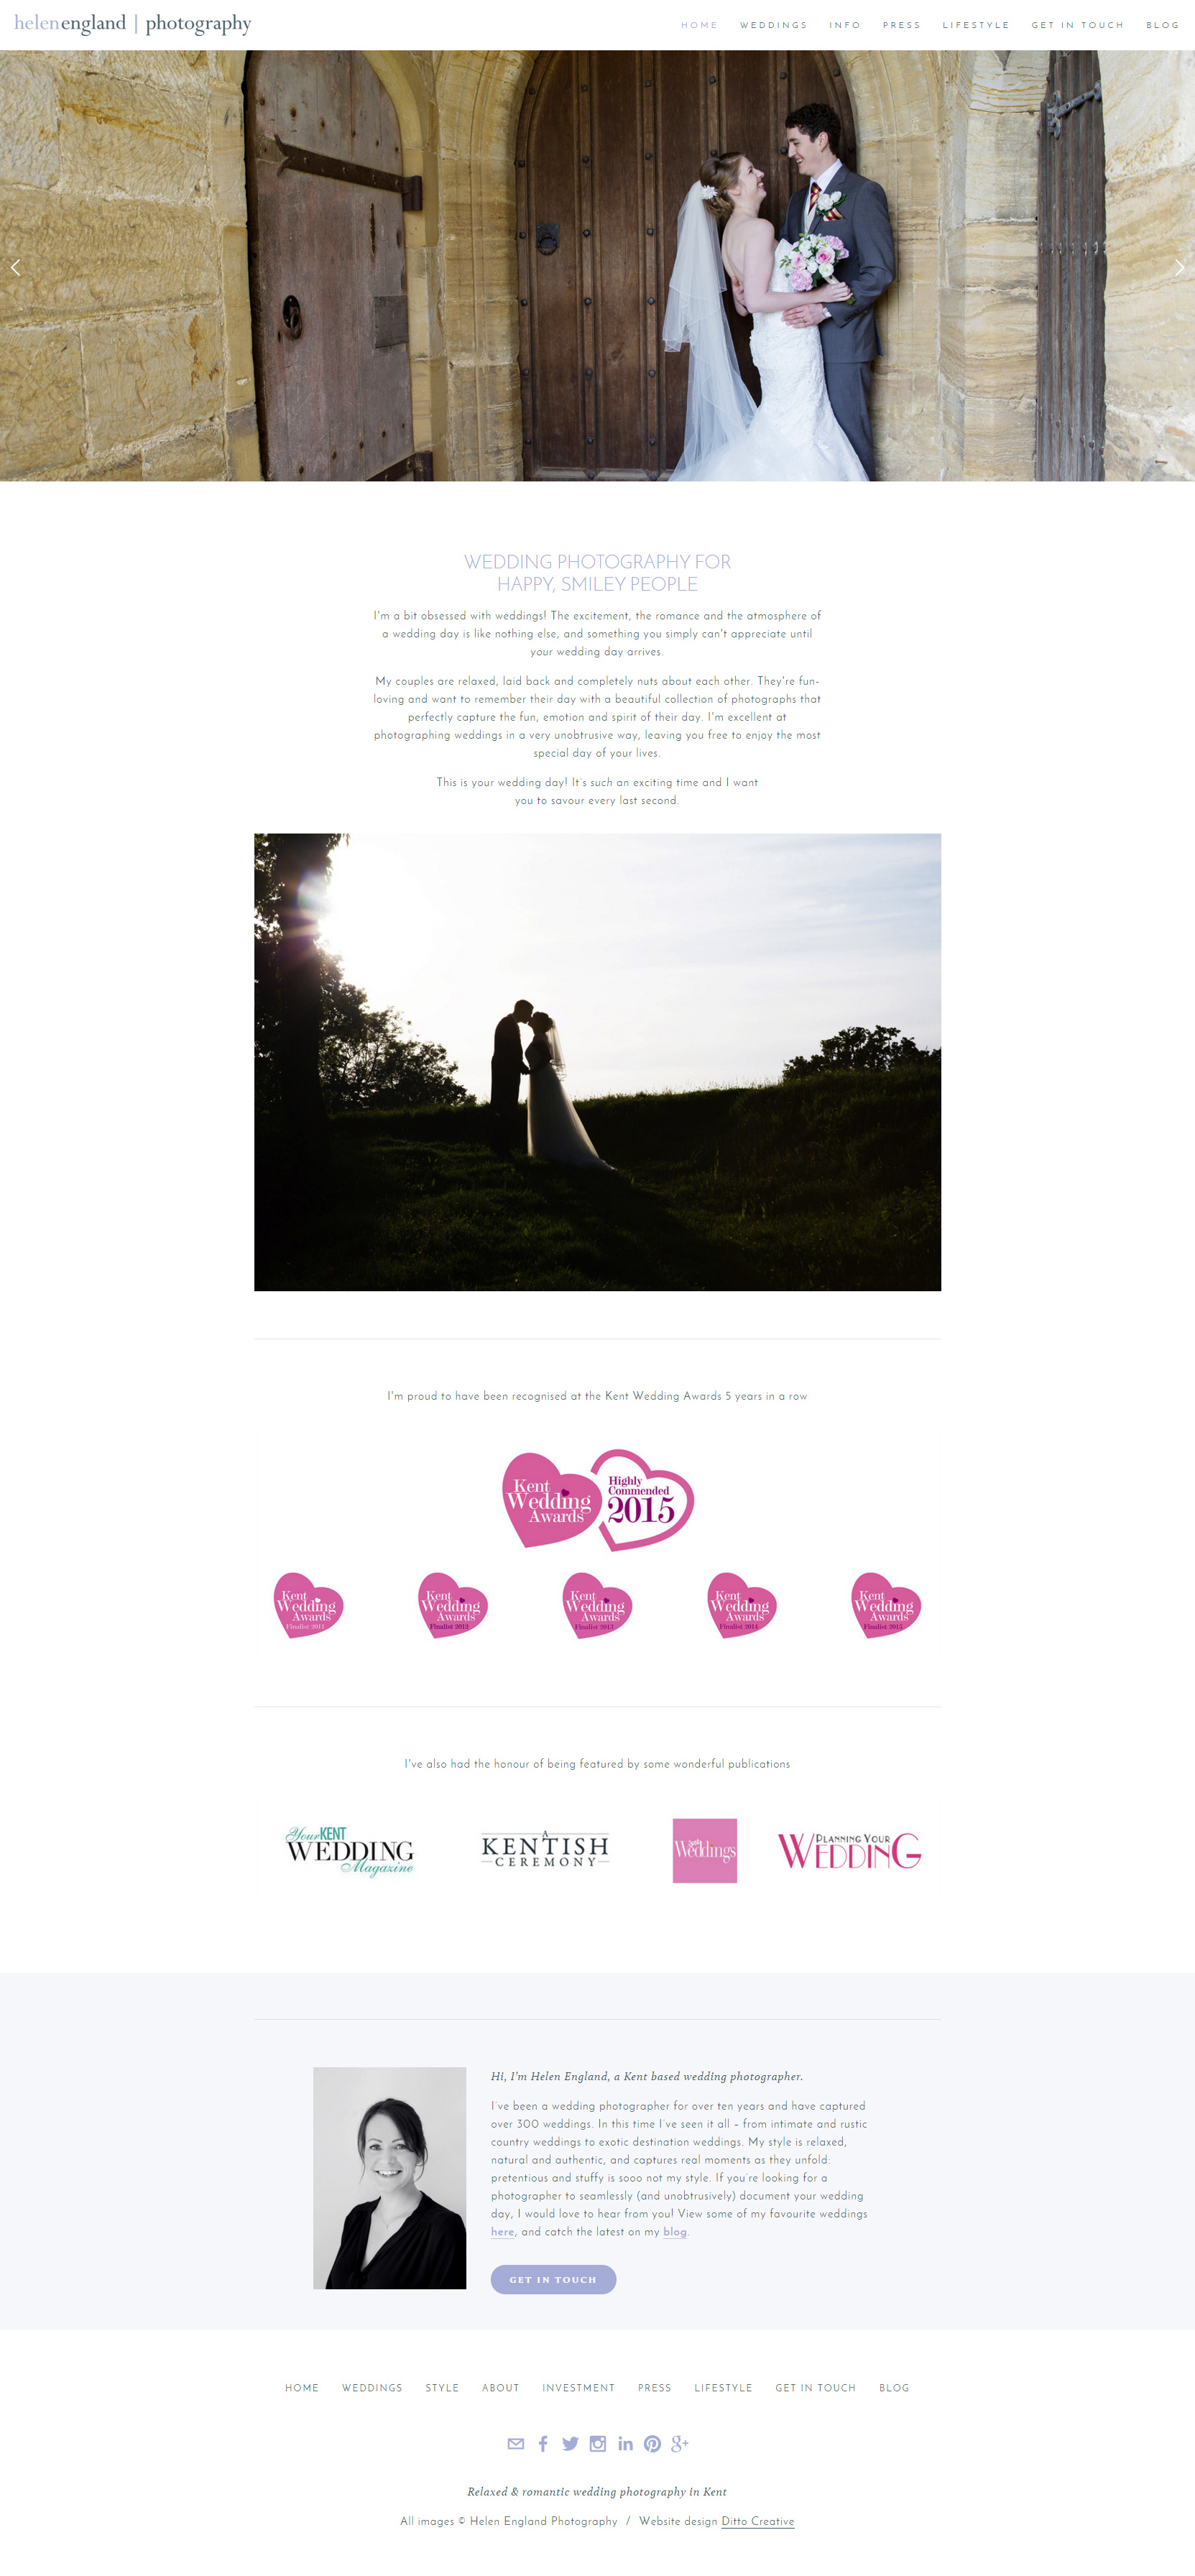 Helen England Photography website by Ditto Creative